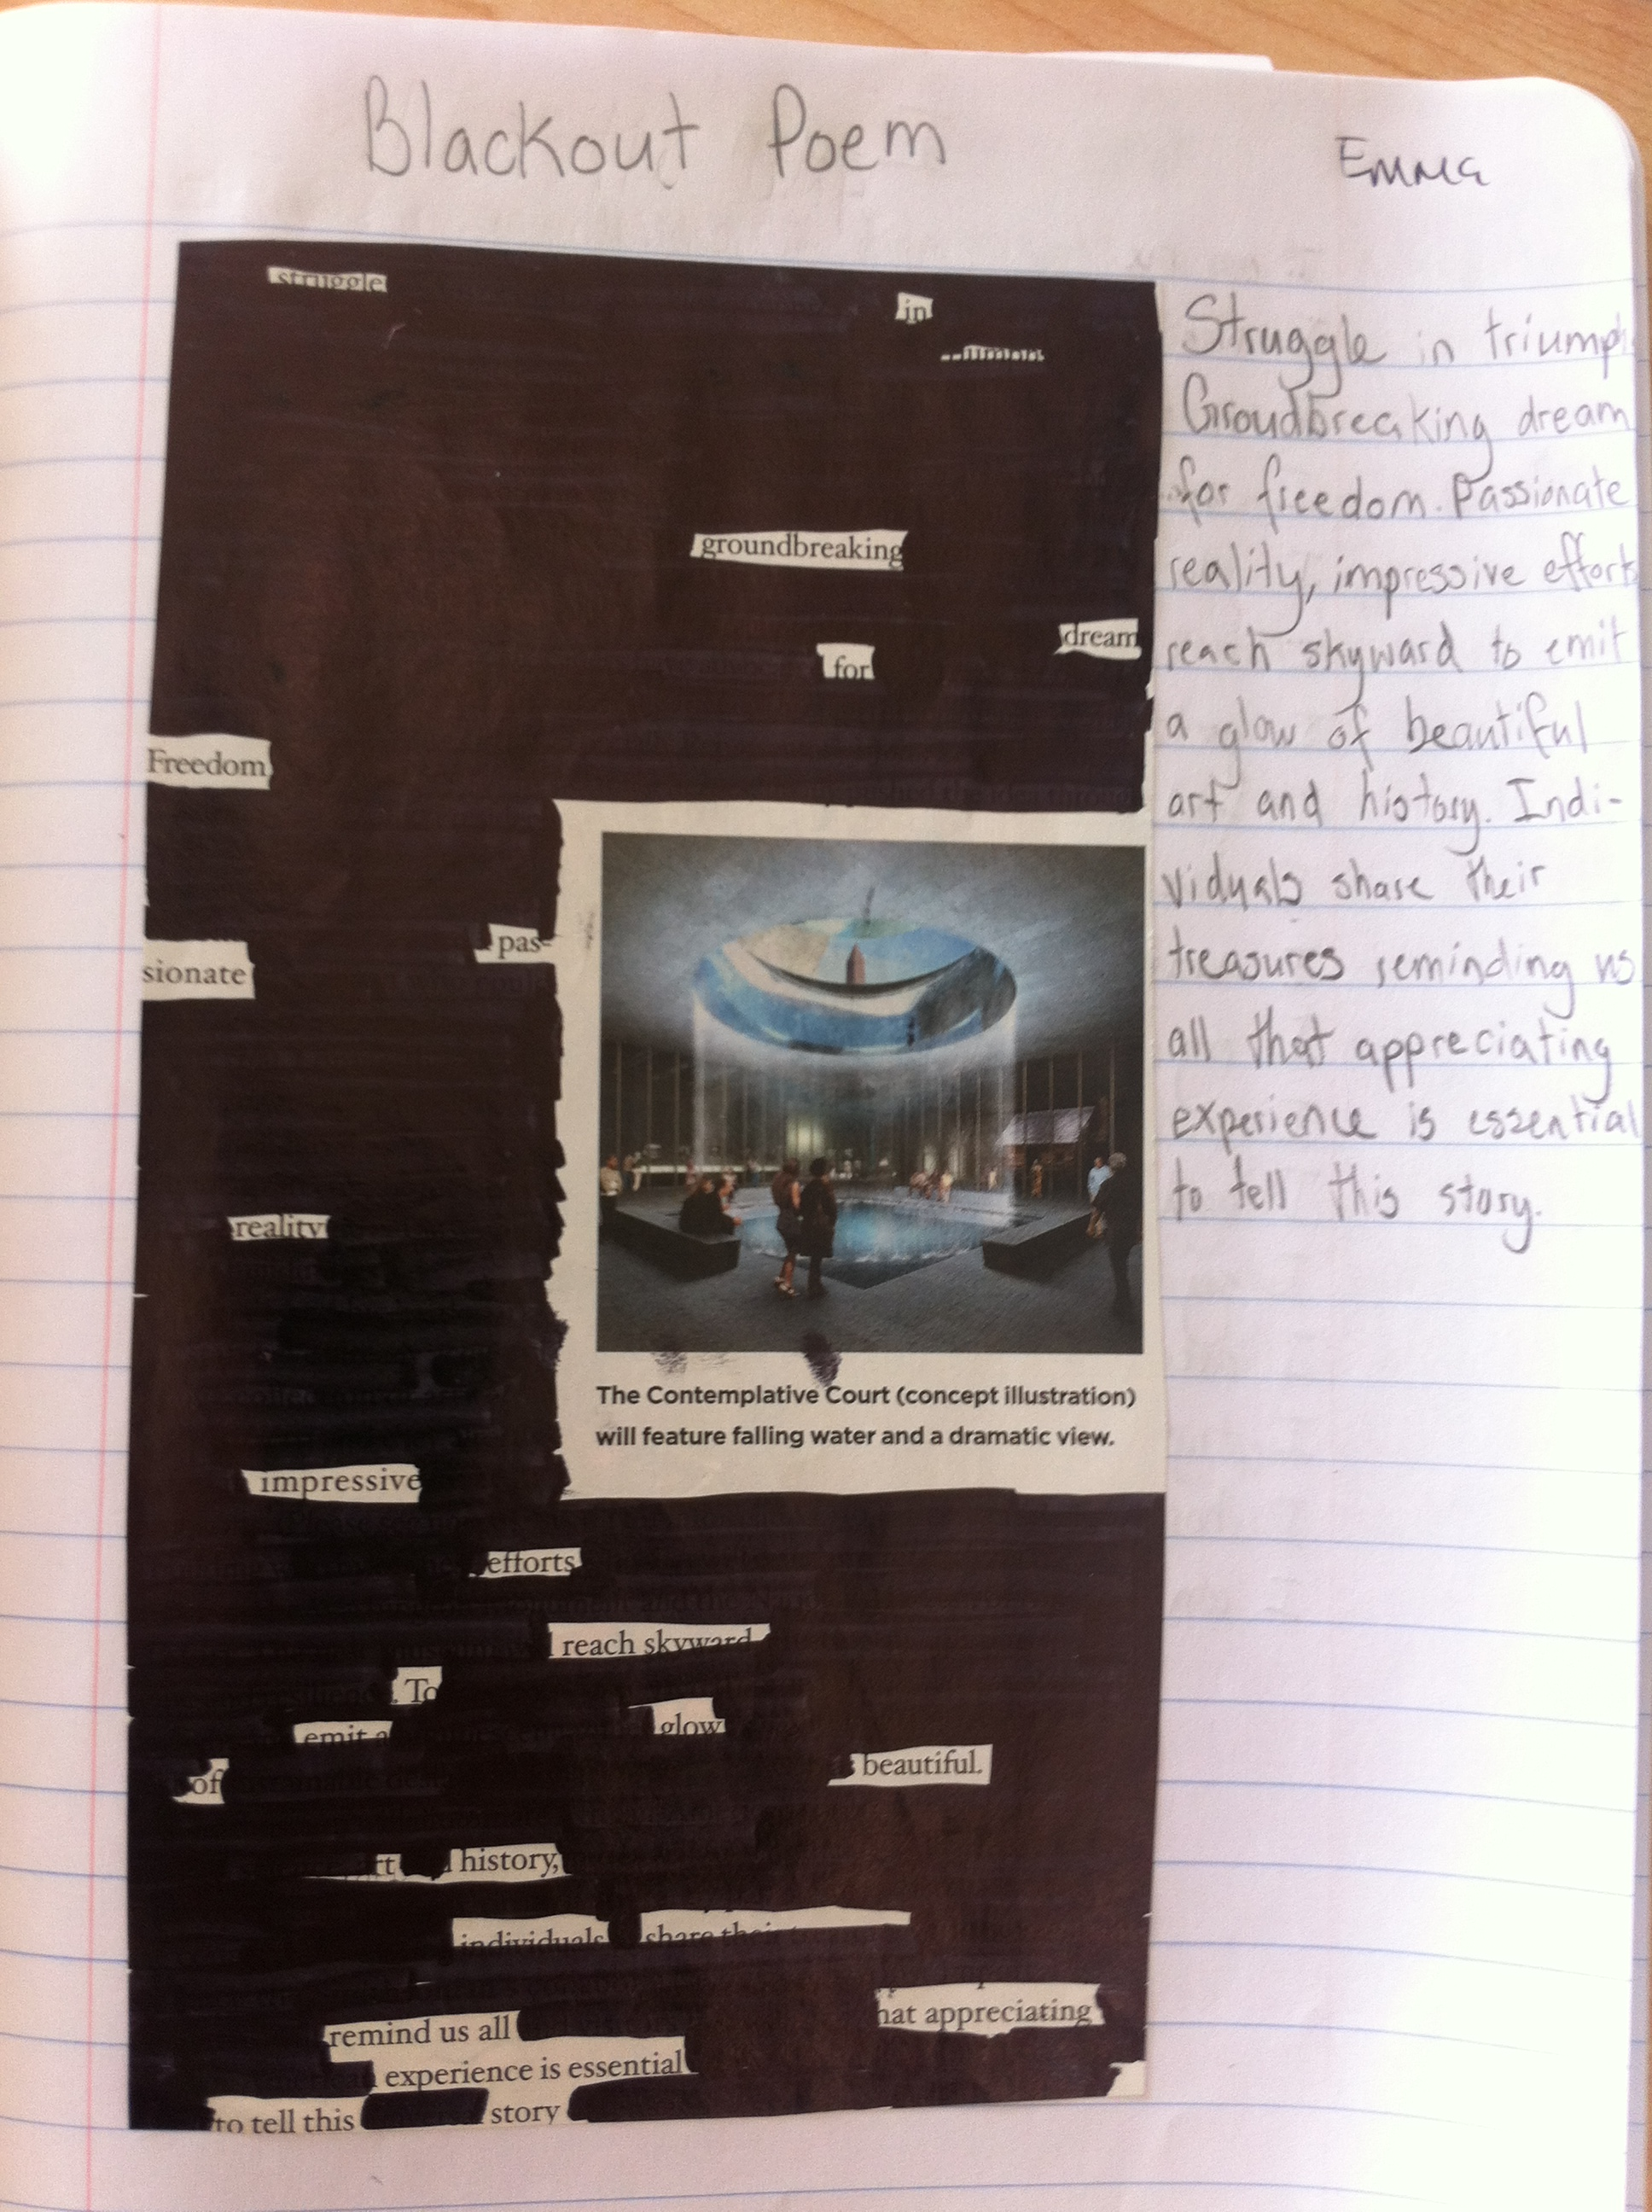 Blackout Poem by Emma